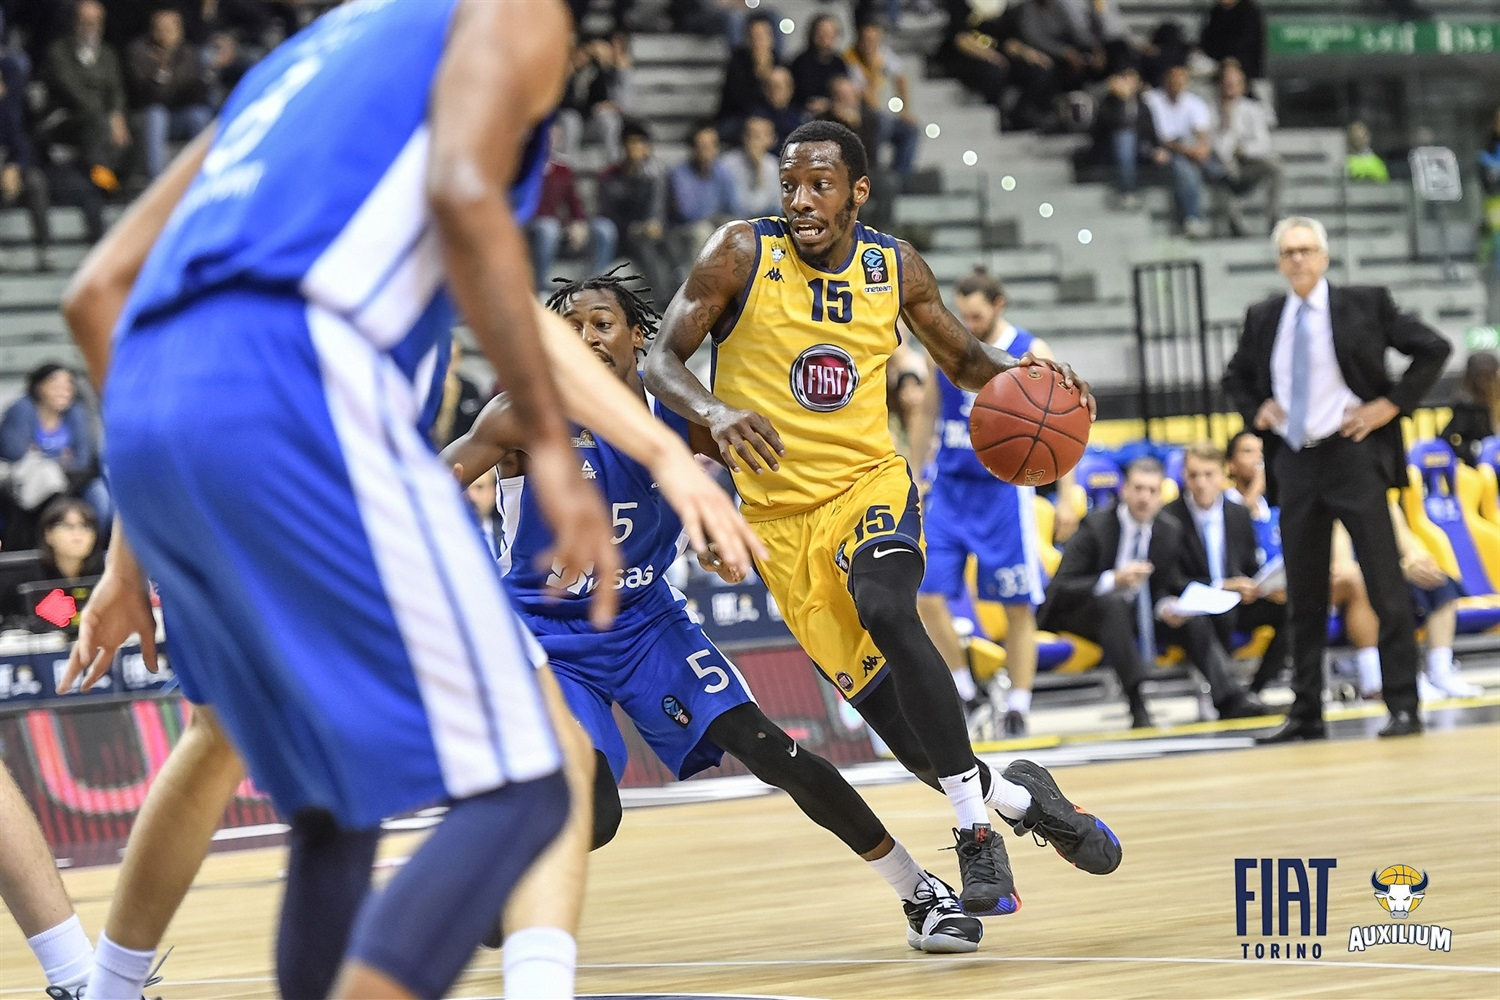 Tyshawn Taylor - Fiat Turin (photo Fiat Turin) - EB18